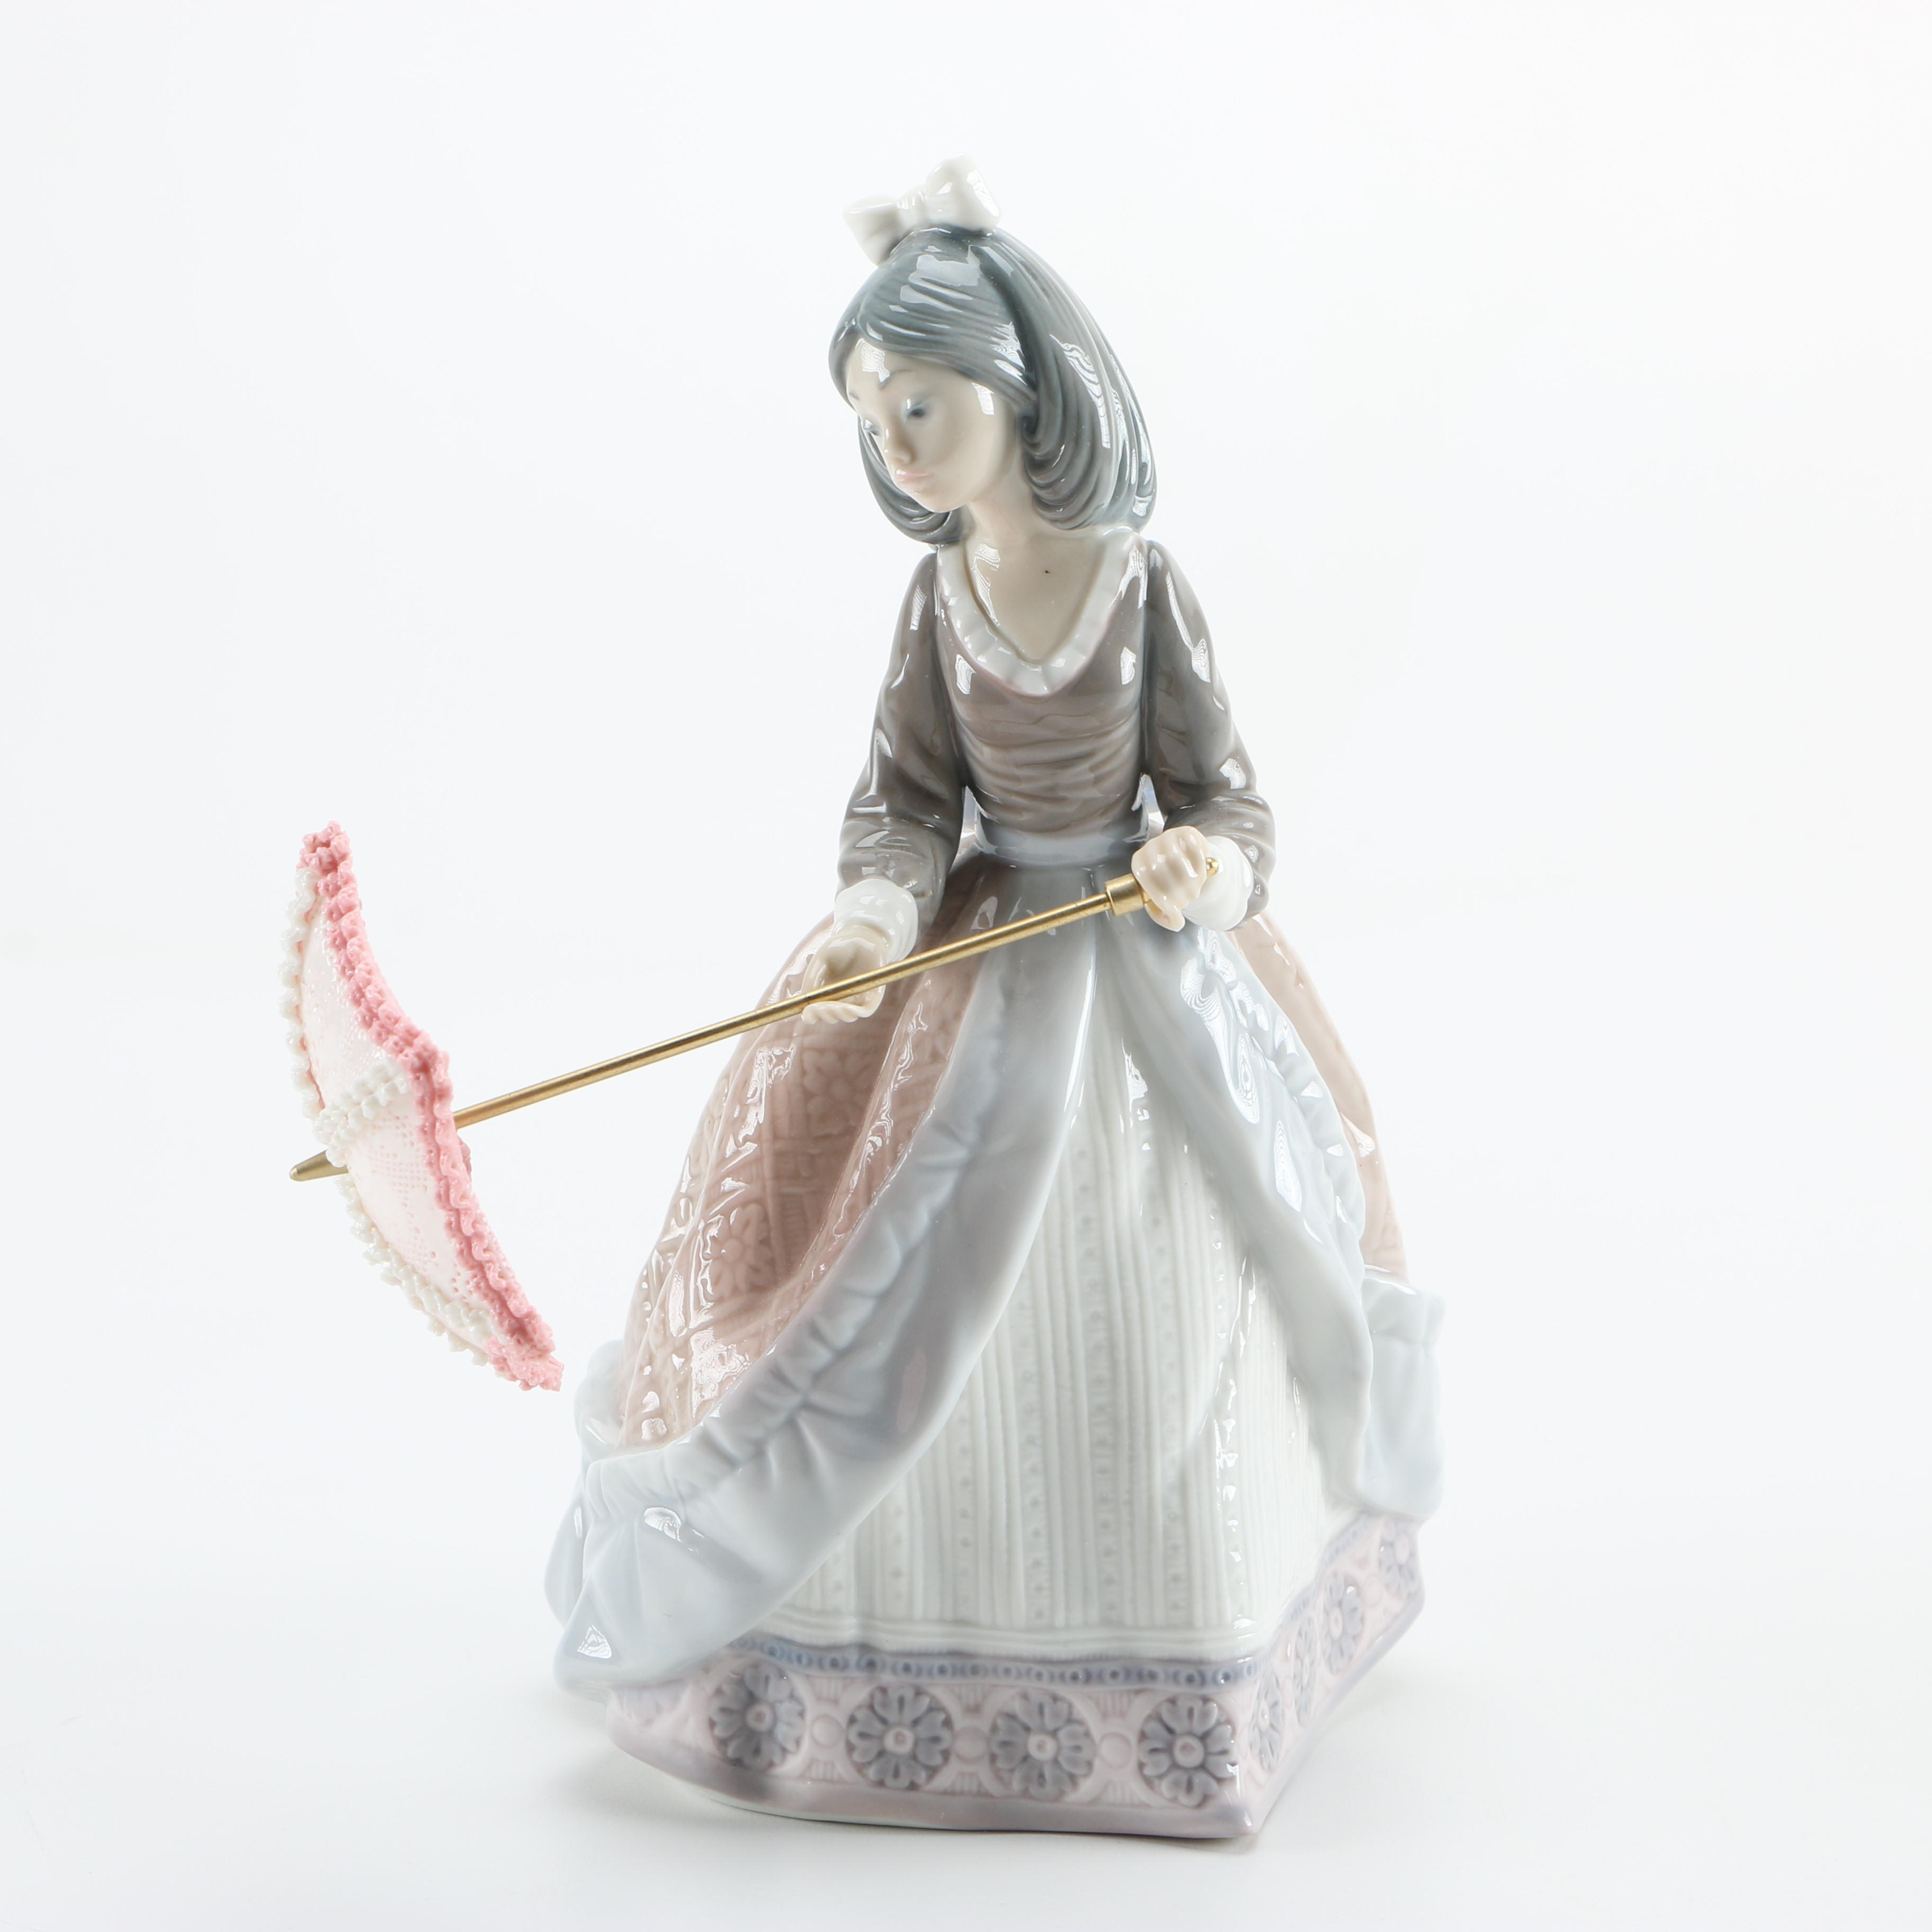 Lladró Figurine of a Girl With an Open Umbrella